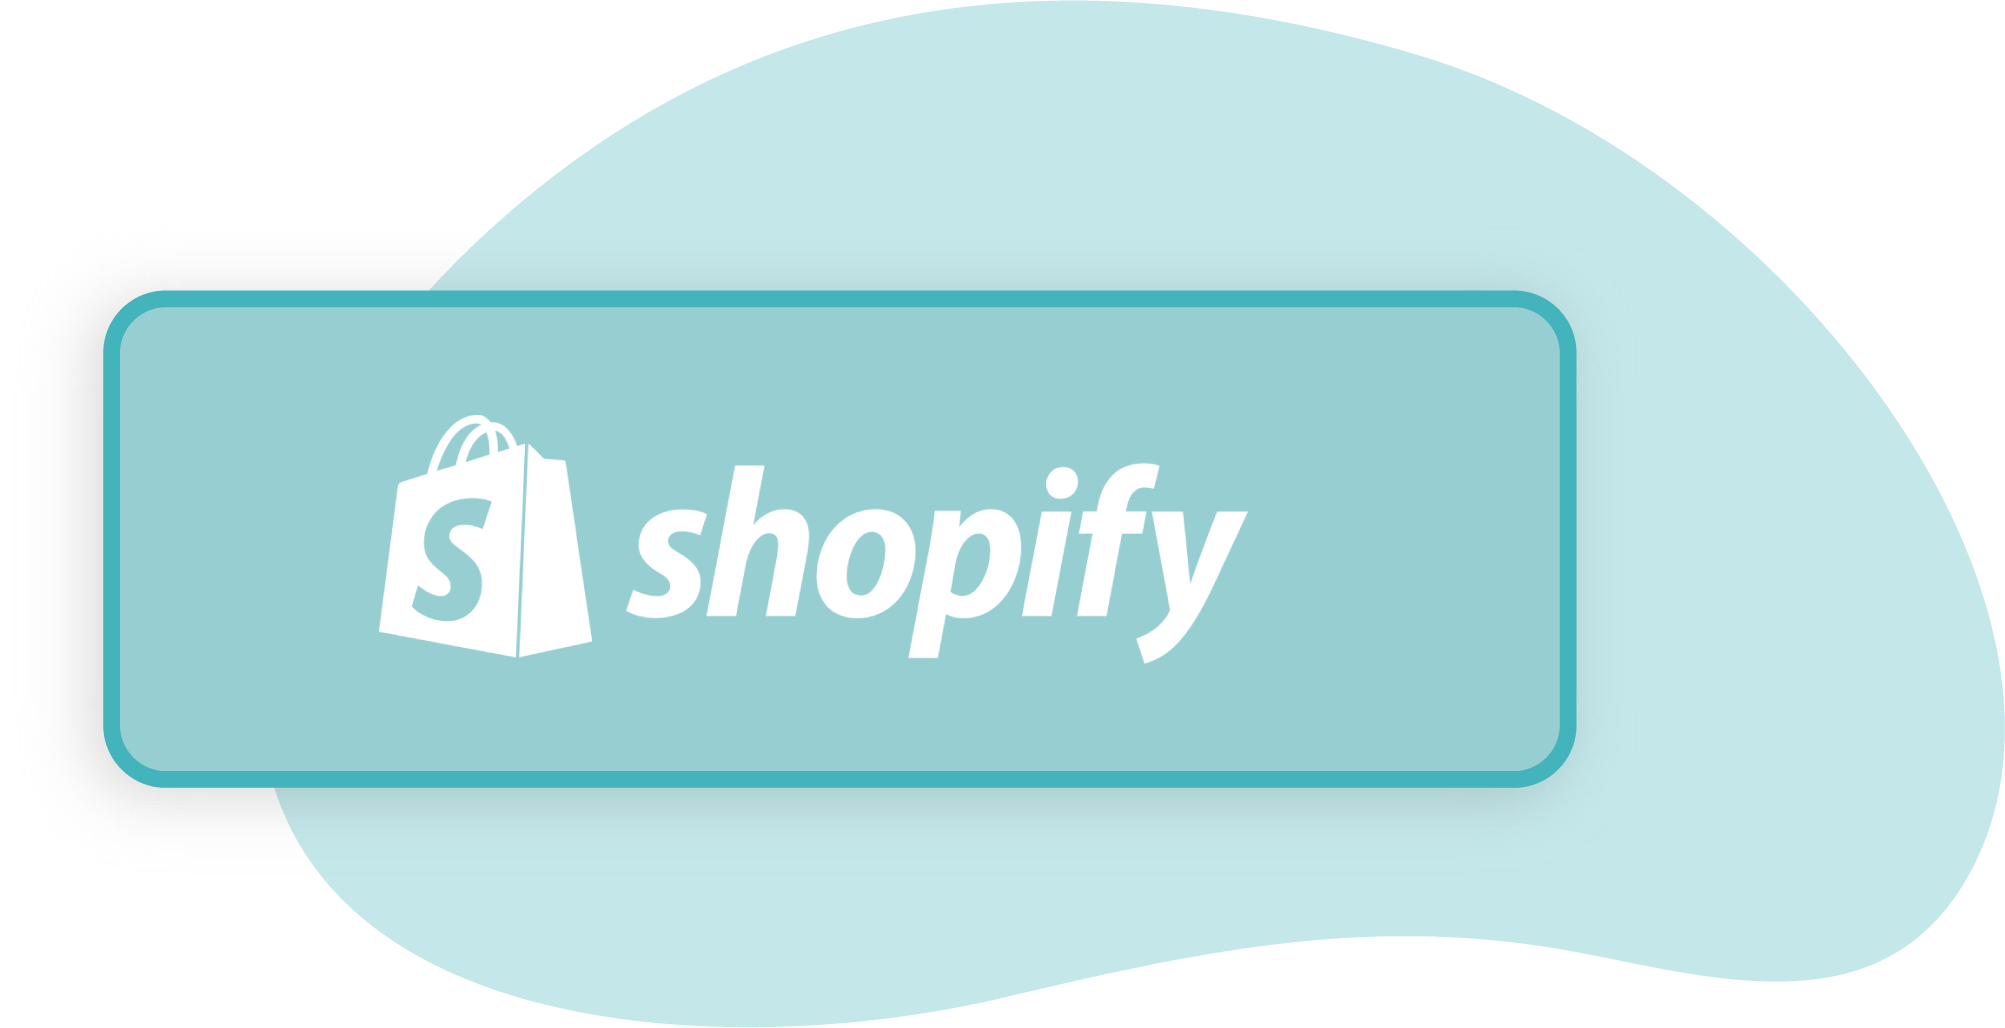 Hive's Shopify integration to send smarter ecommerce email campaigns and sell more stuff